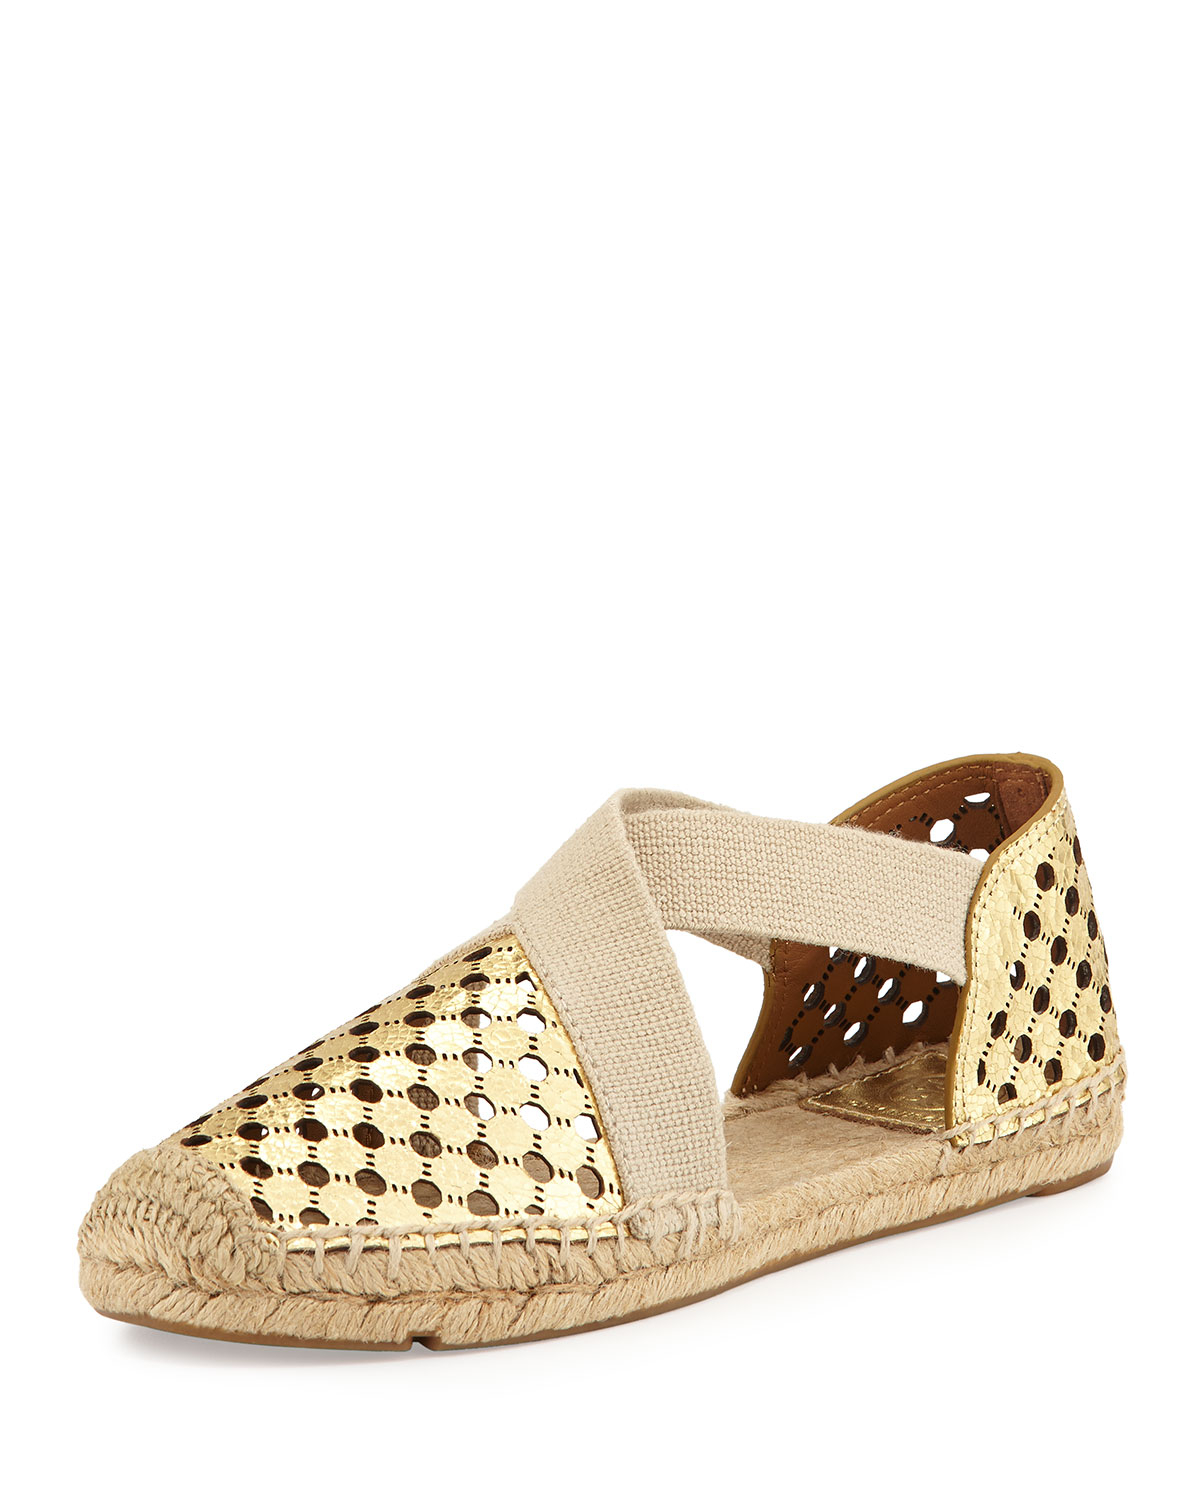 61b85a73ef65 Lyst - Tory Burch Catalina Perforated Espadrille Flat in Natural